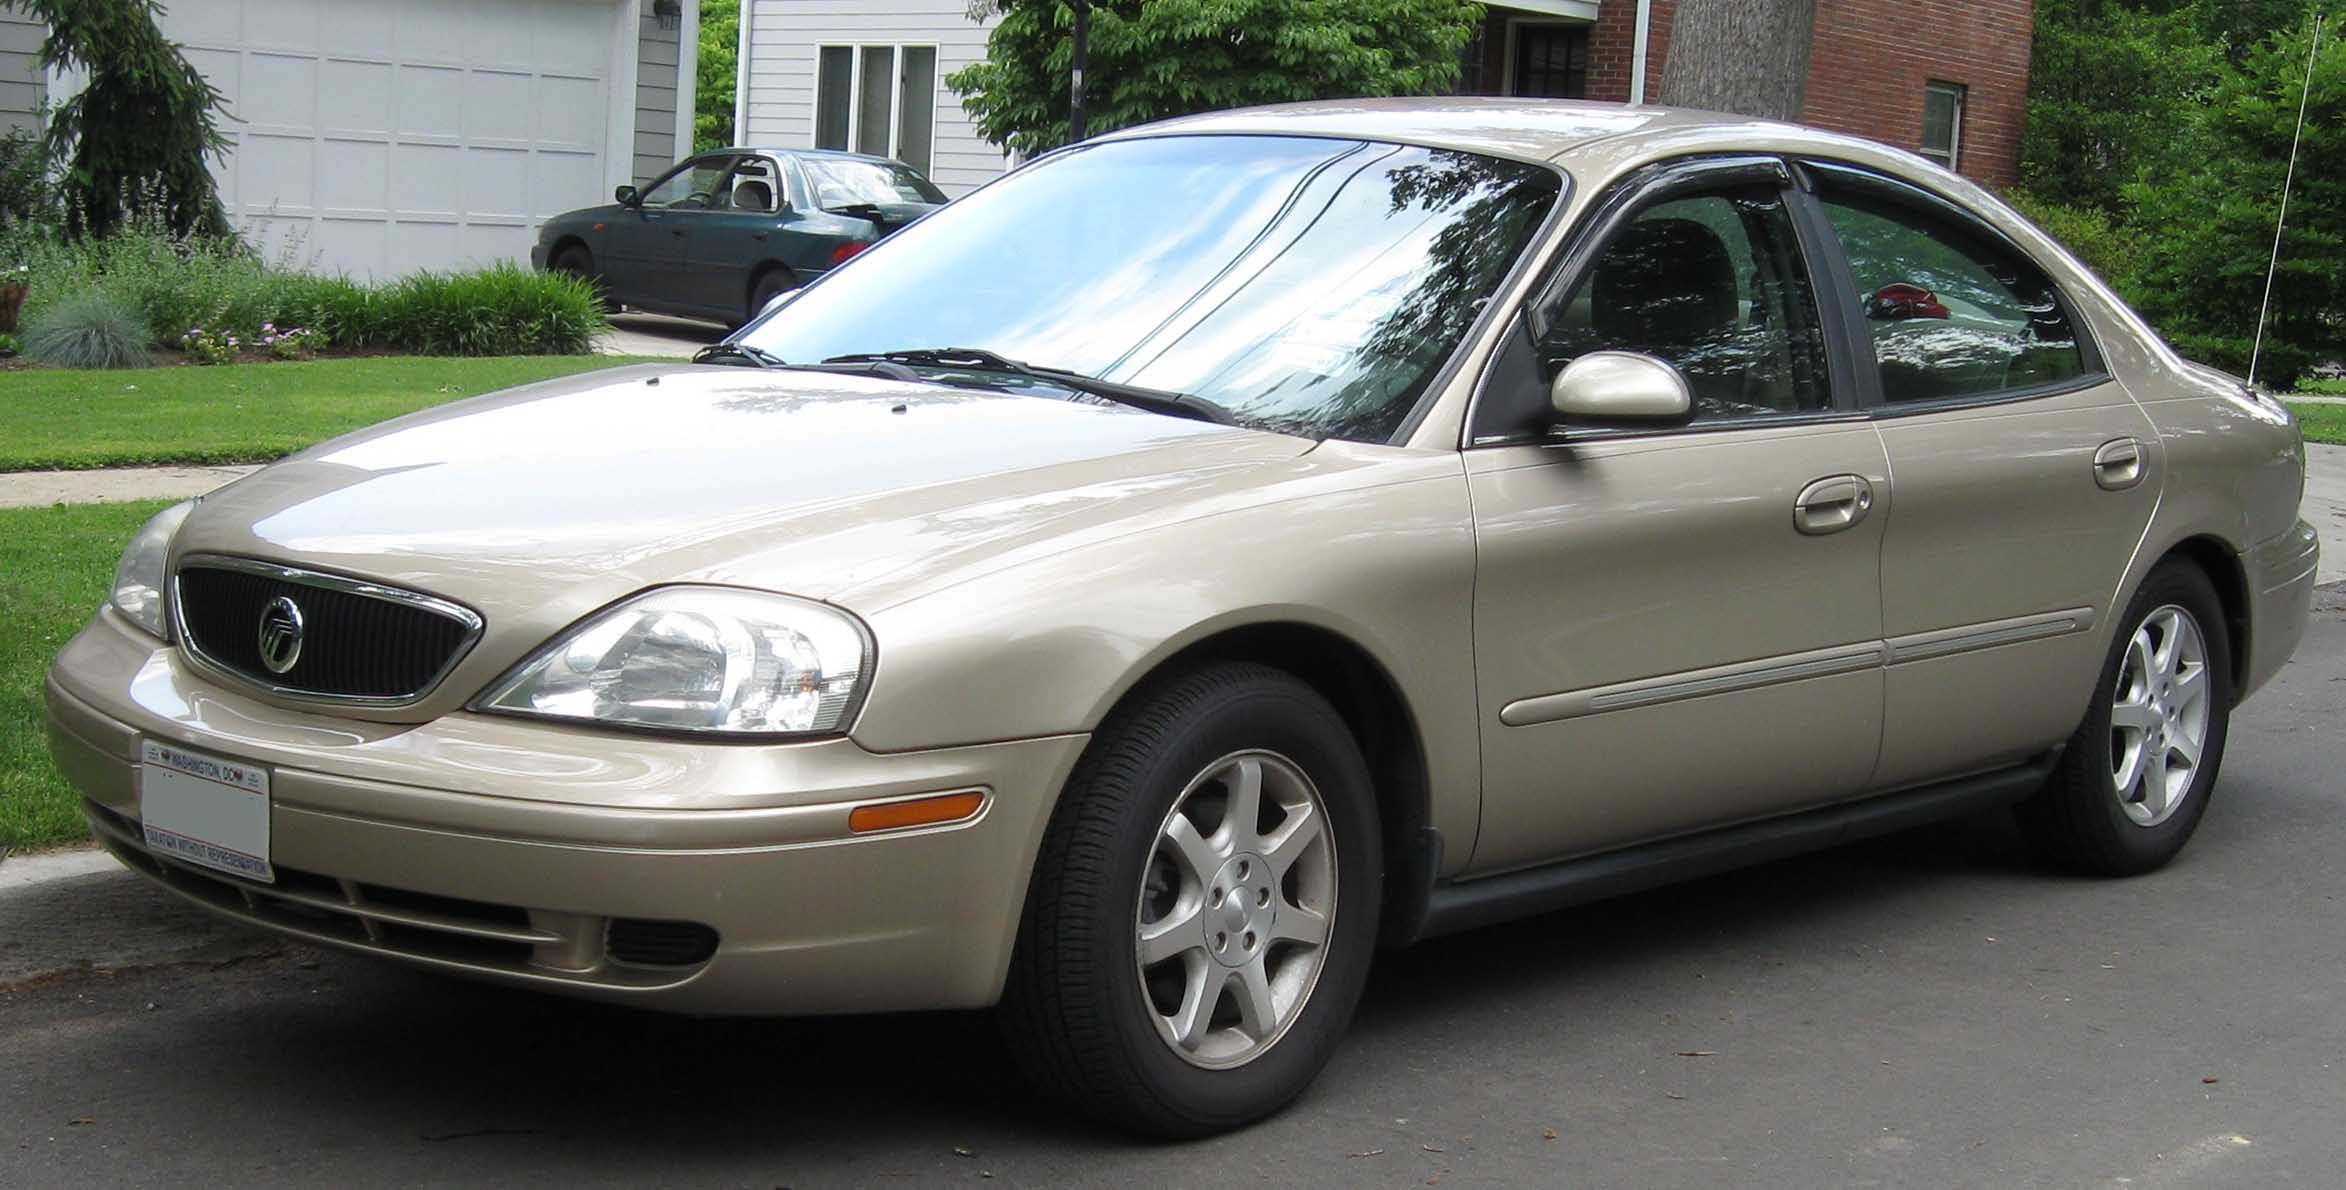 Mercury Sable 2002 #1